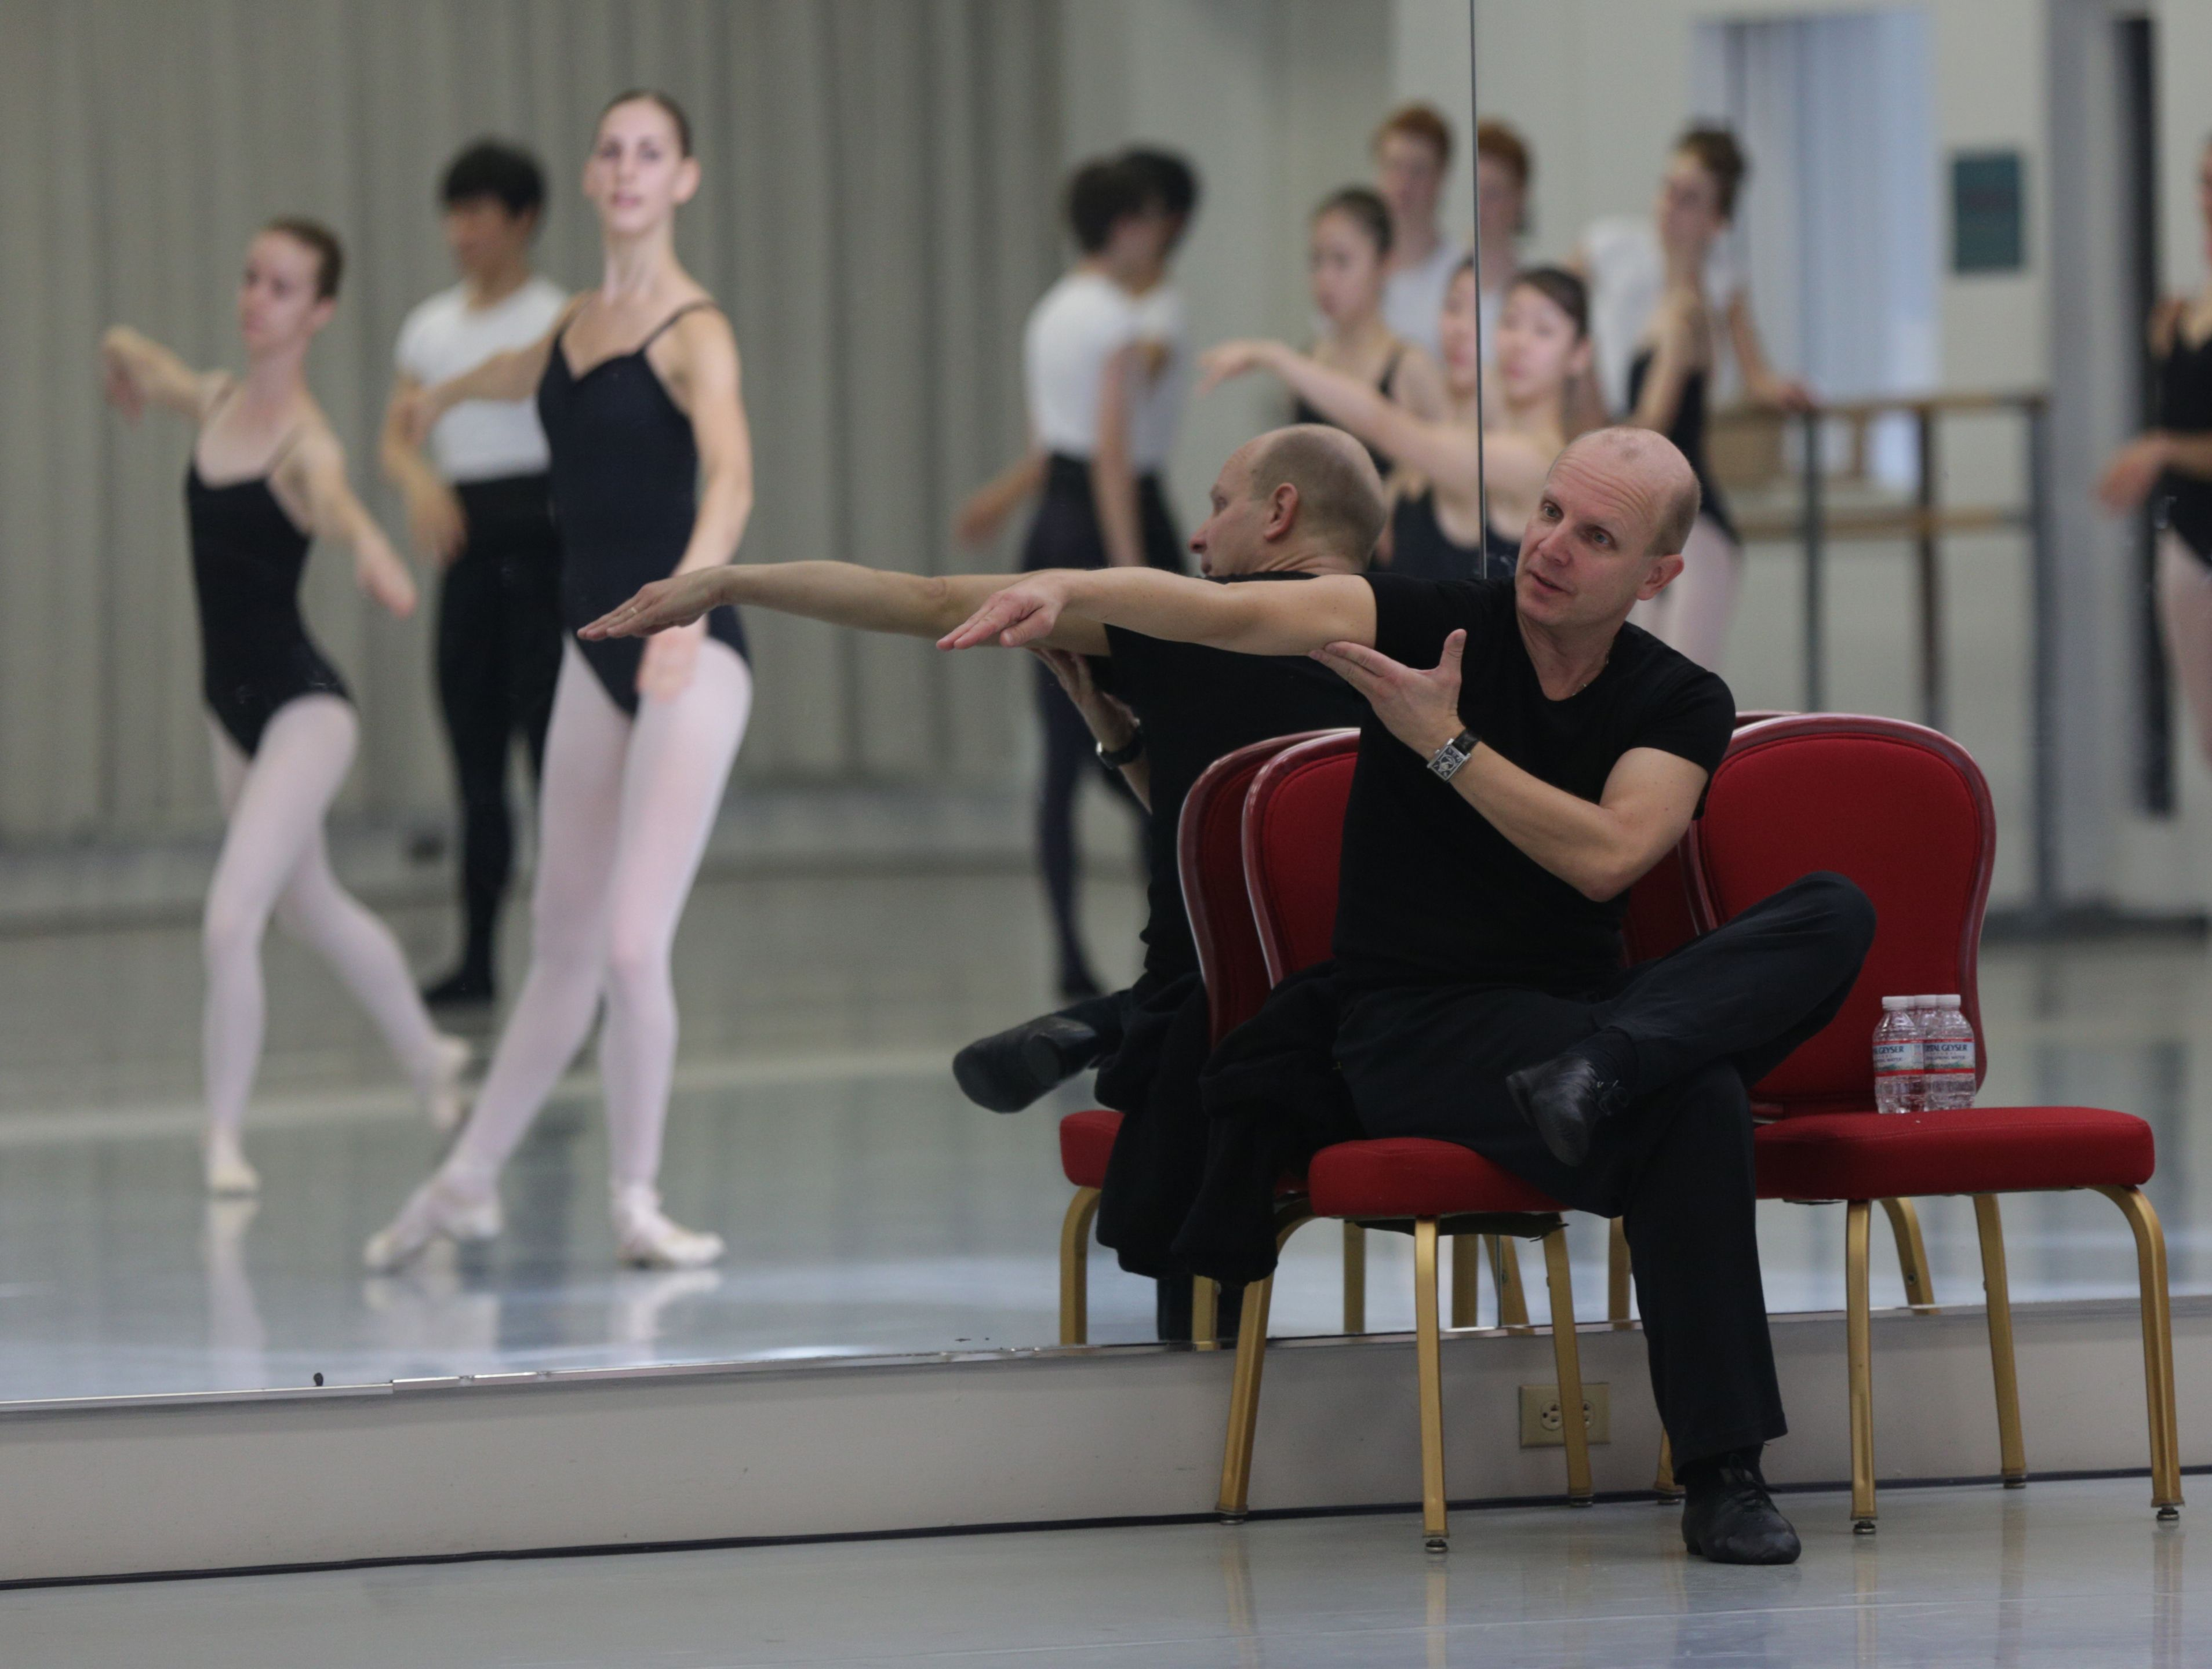 Yuri Fateev, Deputy Director of the Ballet Company of the Mariinsky Theatre and Ballet Master, conducting a master class for Kirov Academy Ballet's students. (Director's Choice Series, October 2012). Photo by Paolo Galli